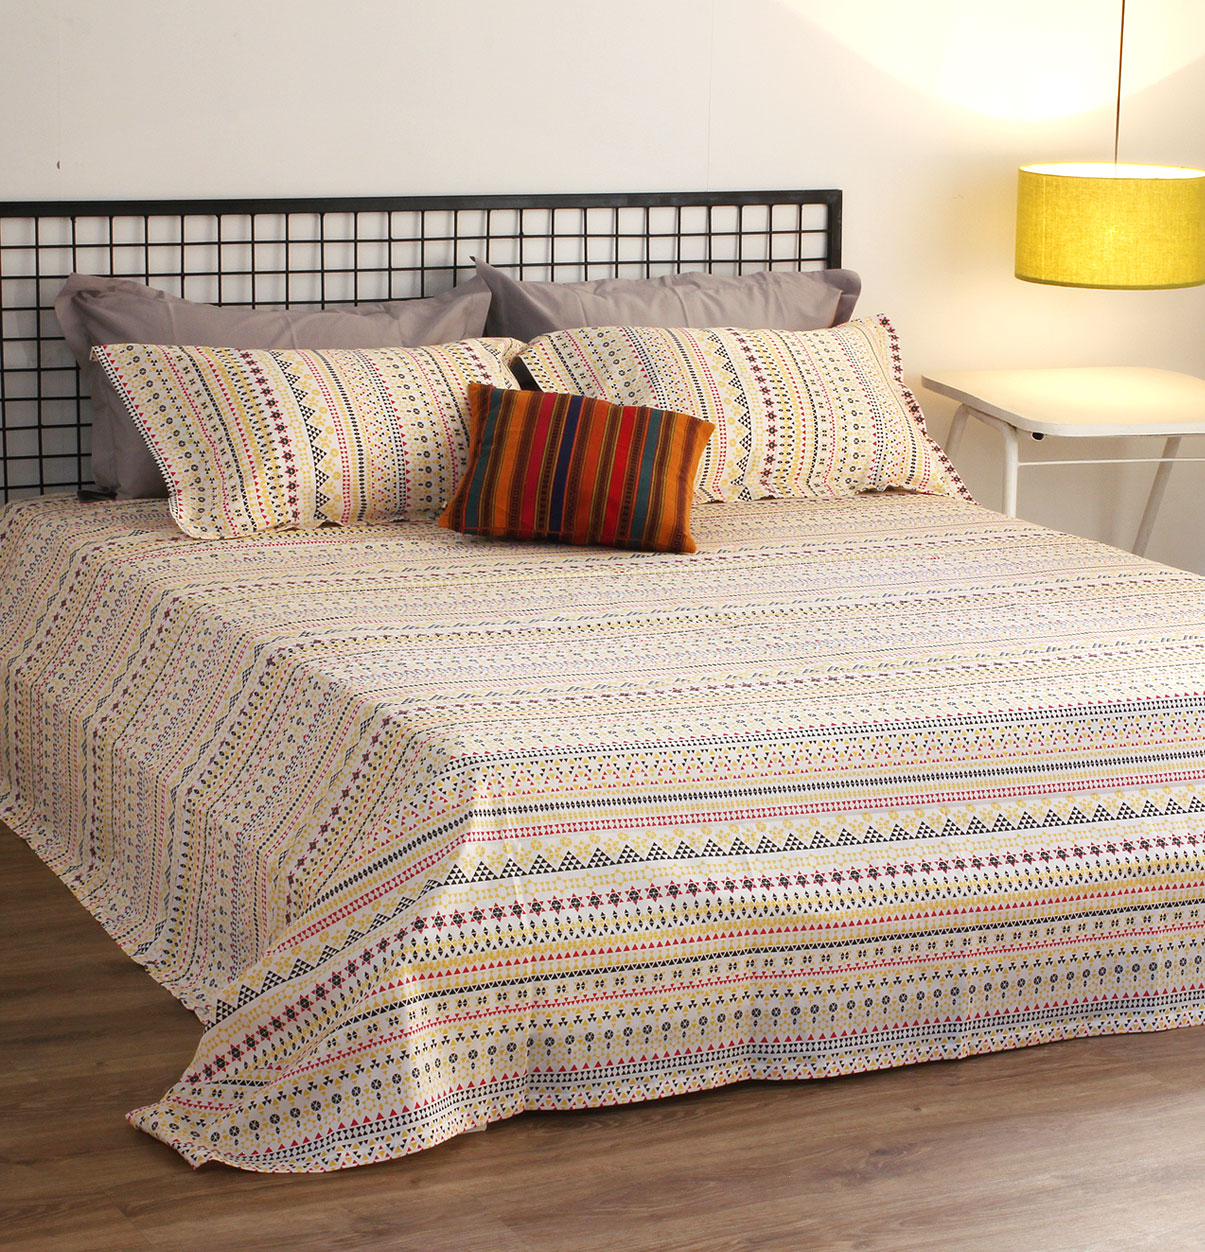 Mosaic Print Cotton Bed Sheet Yellow With 2 Pillow